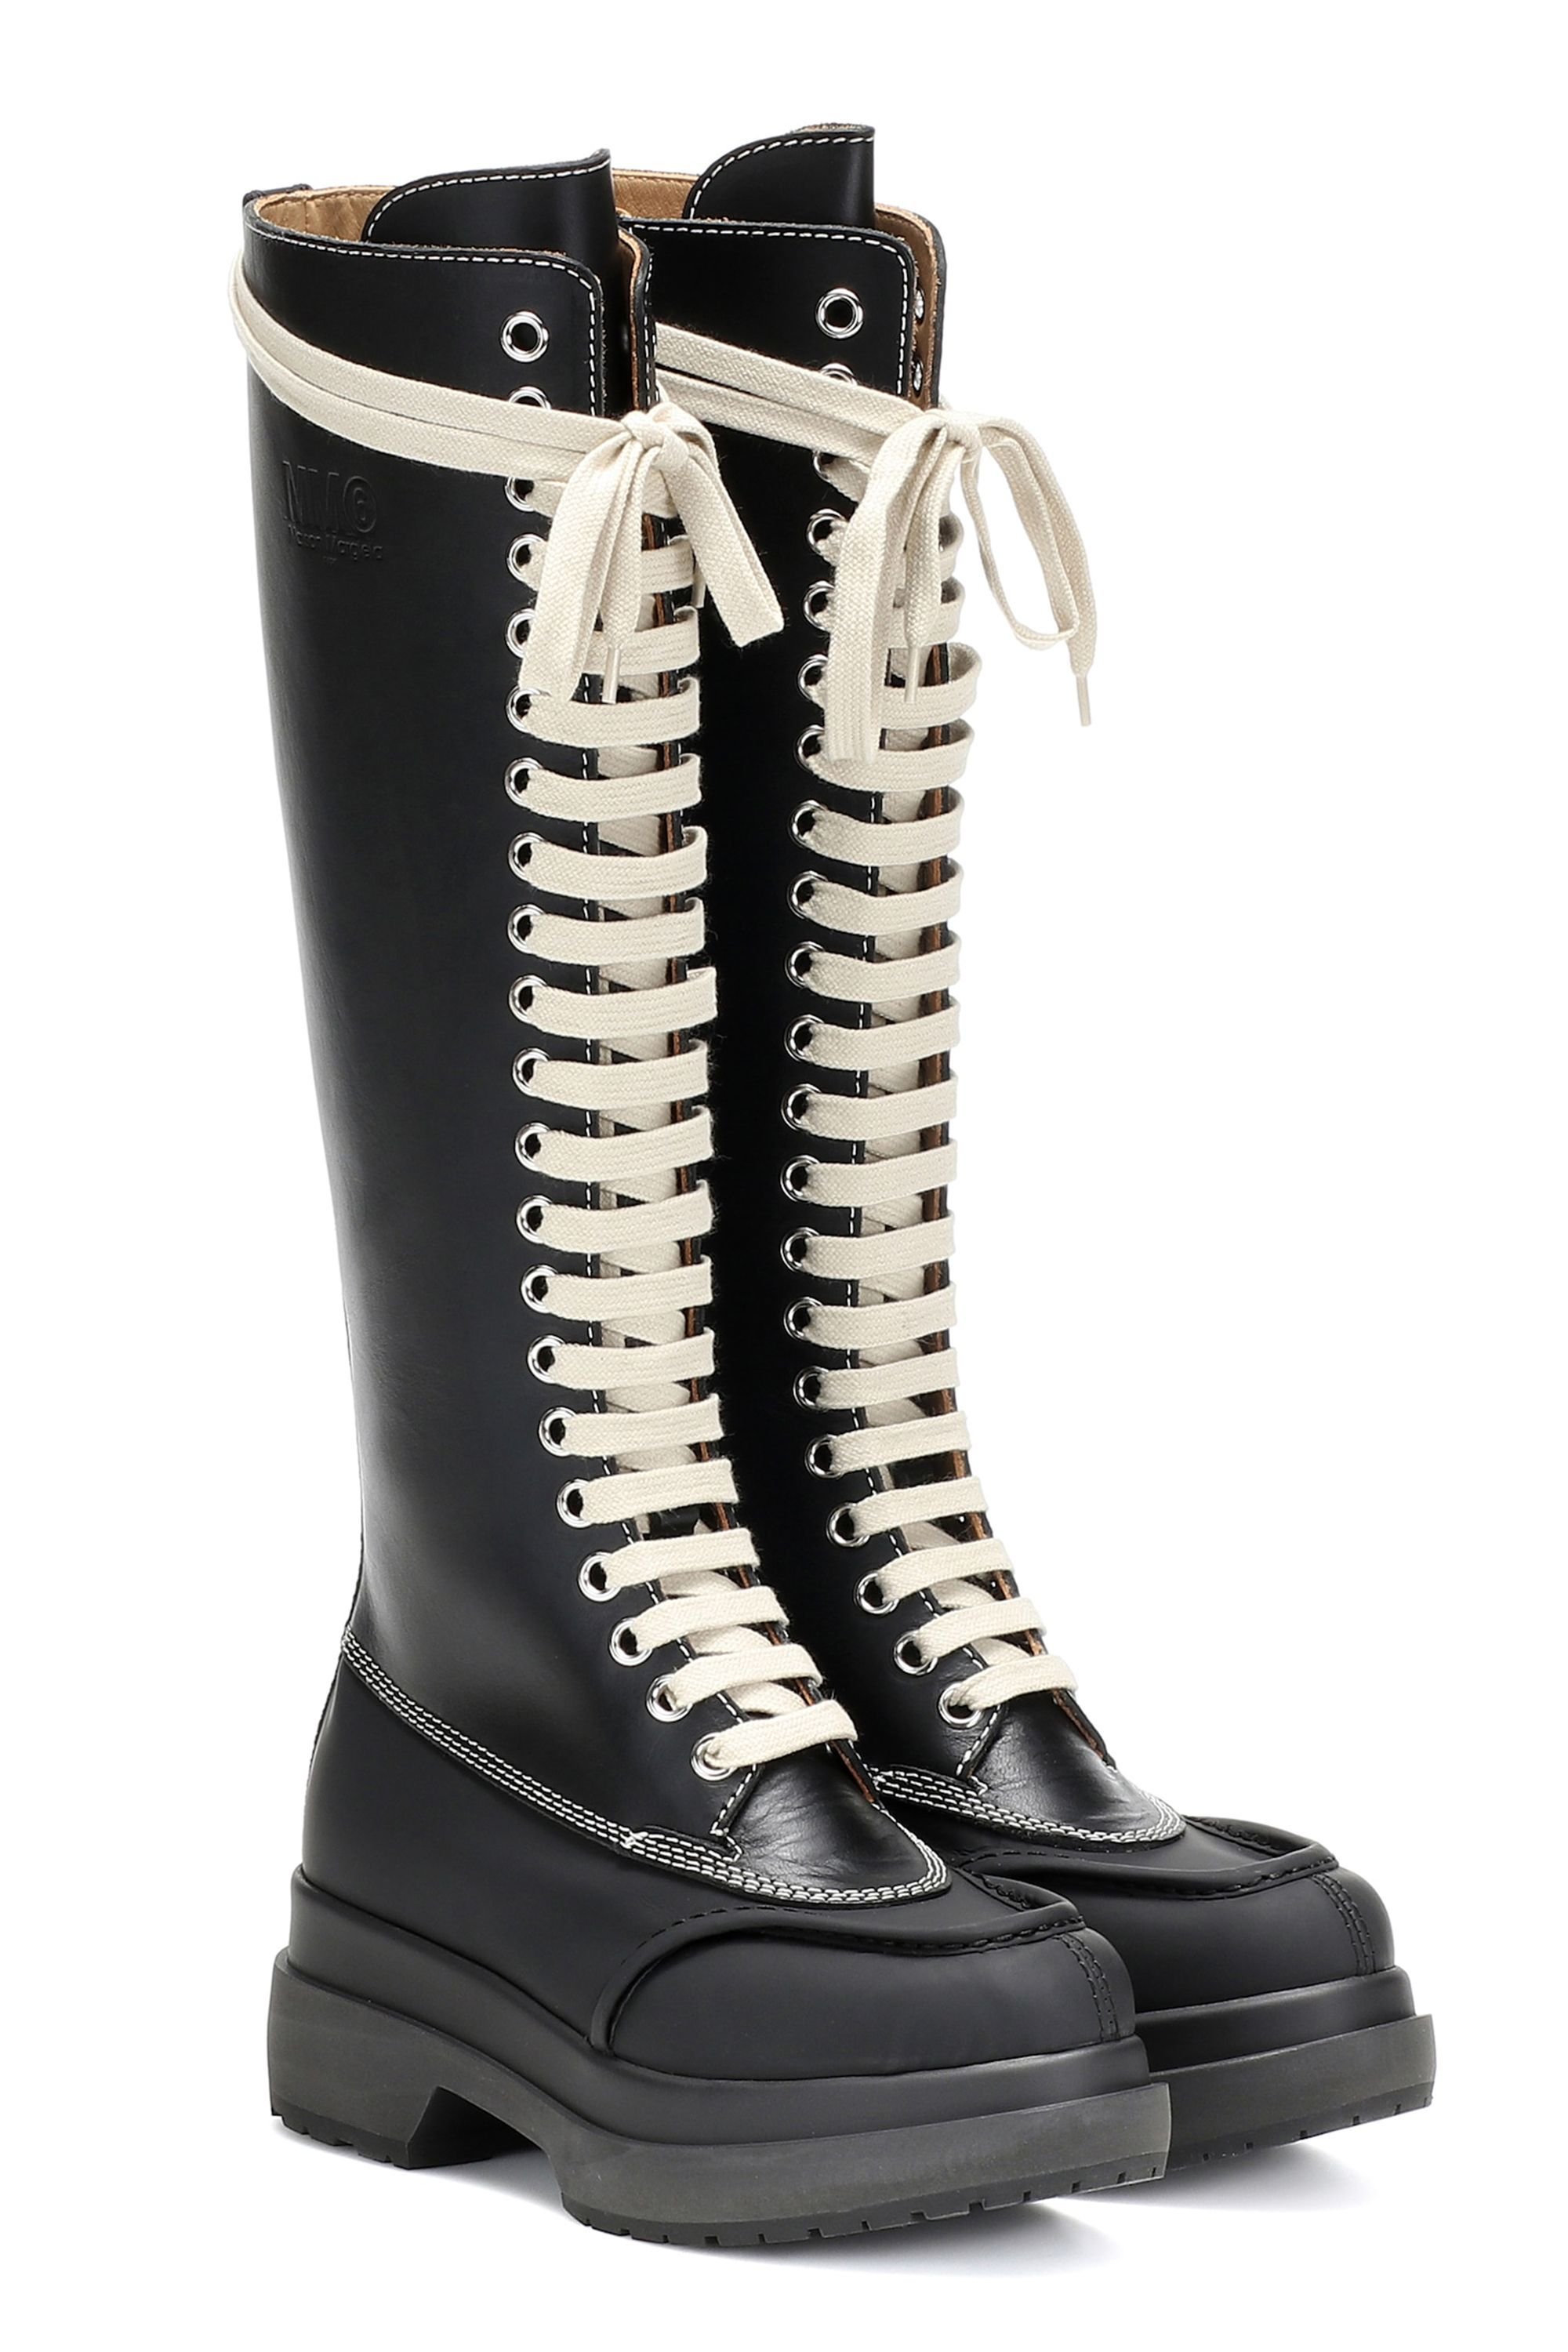 Goth Shoes That Even Non-Goths